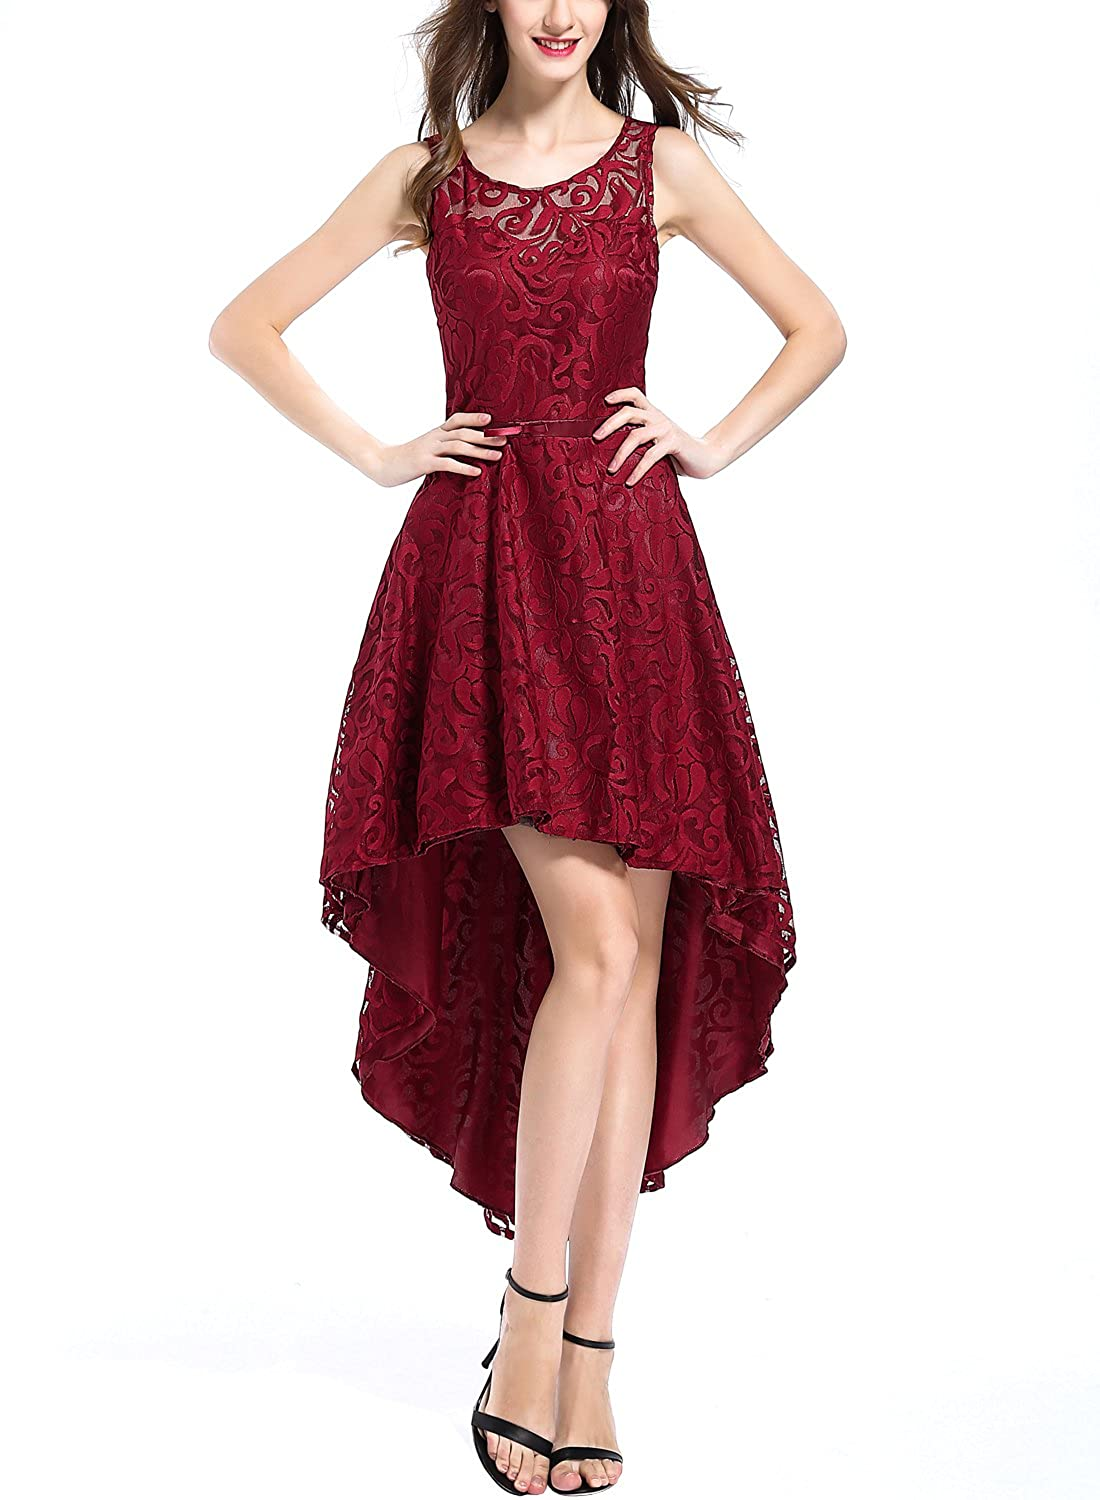 OWIN Womens Vintage Elegant Floral Lace Sleeveless High Low Swing Party Gown Bridesmaid Dress